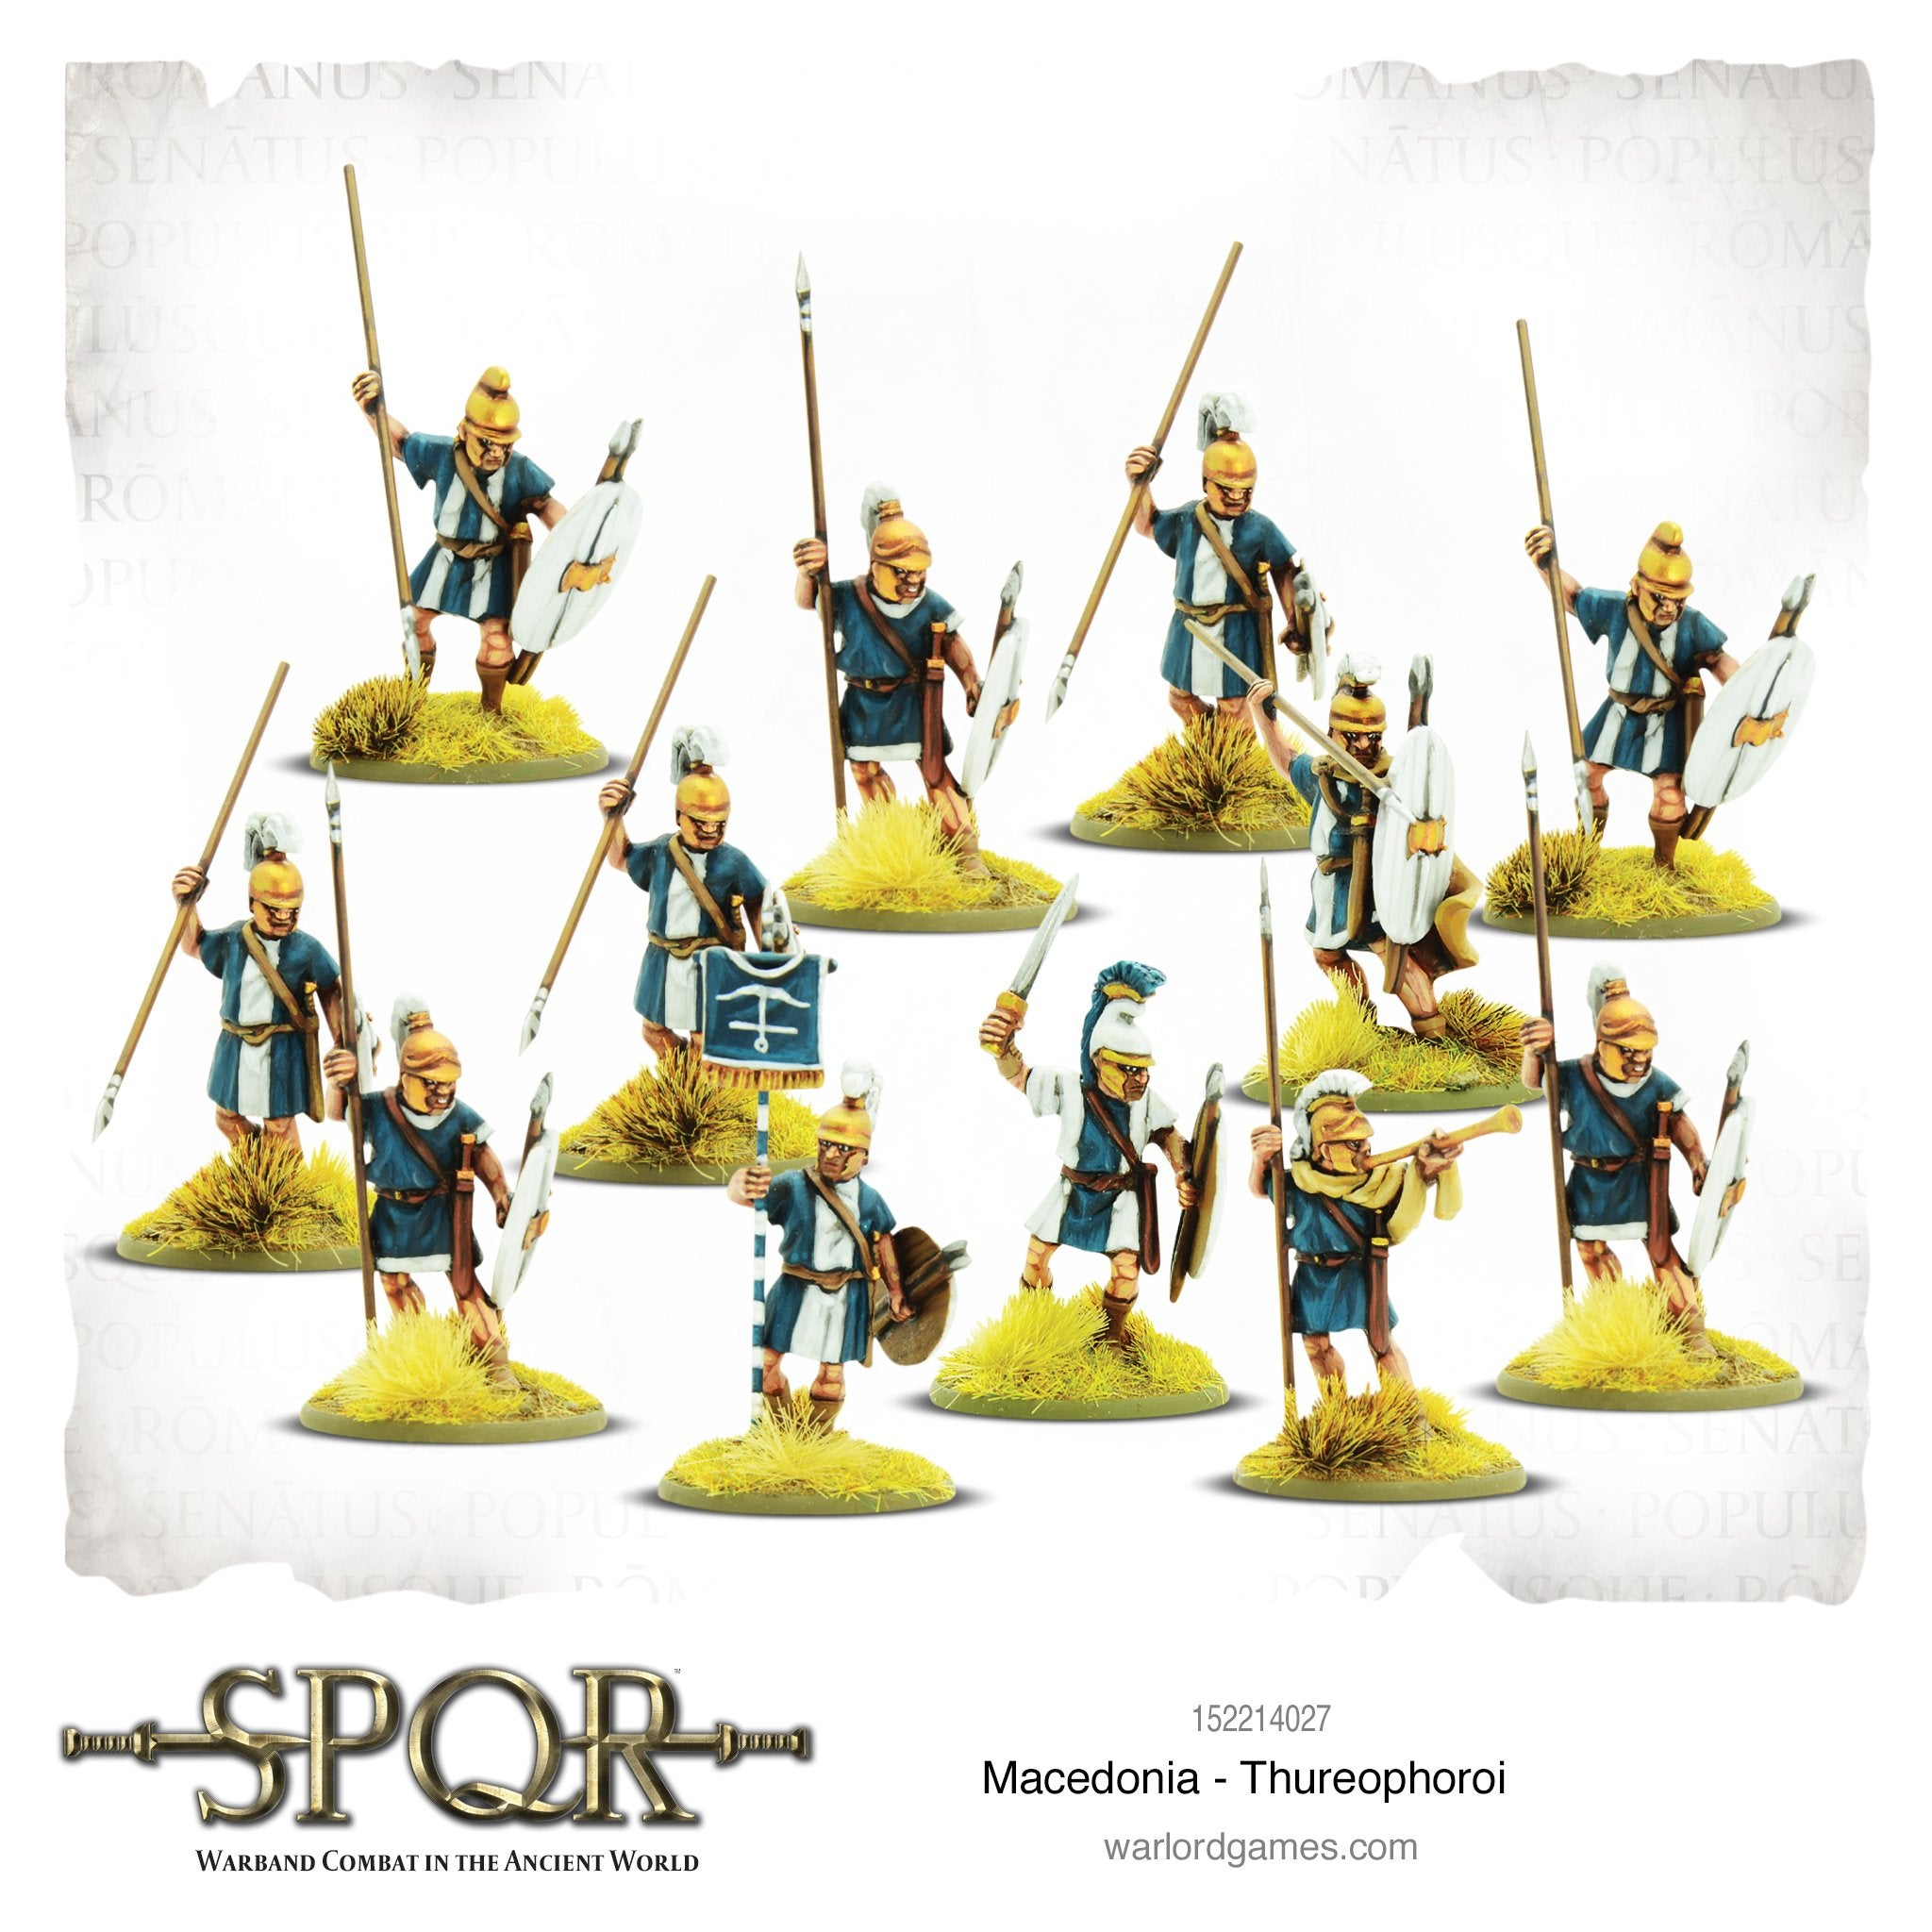 SPQR: Macedonia - Thureophoroi